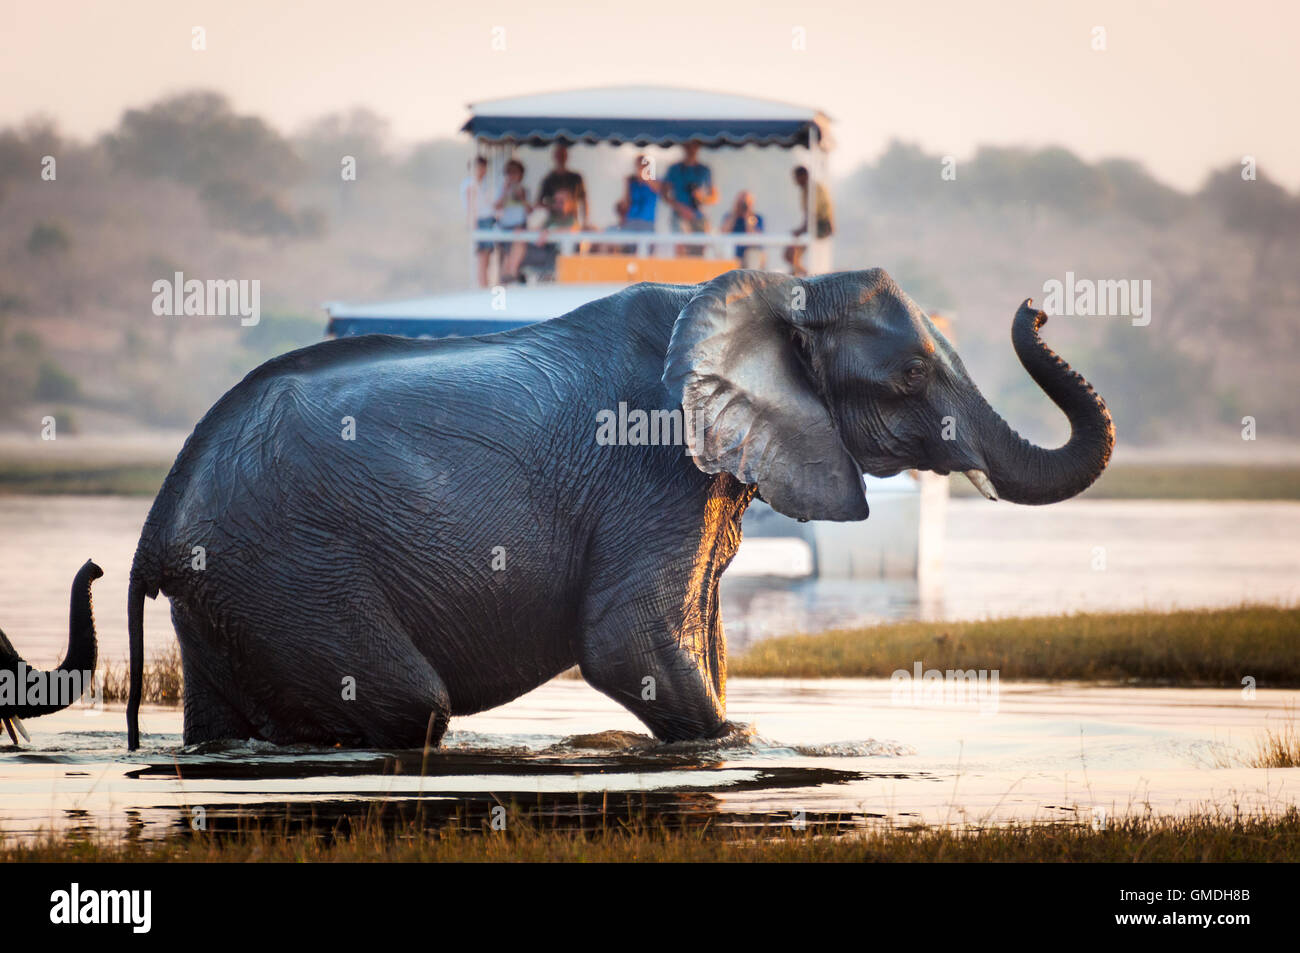 Tourist watching an elephant crossing a river in the Chobe National Park in Botswana, Africa; - Stock Image